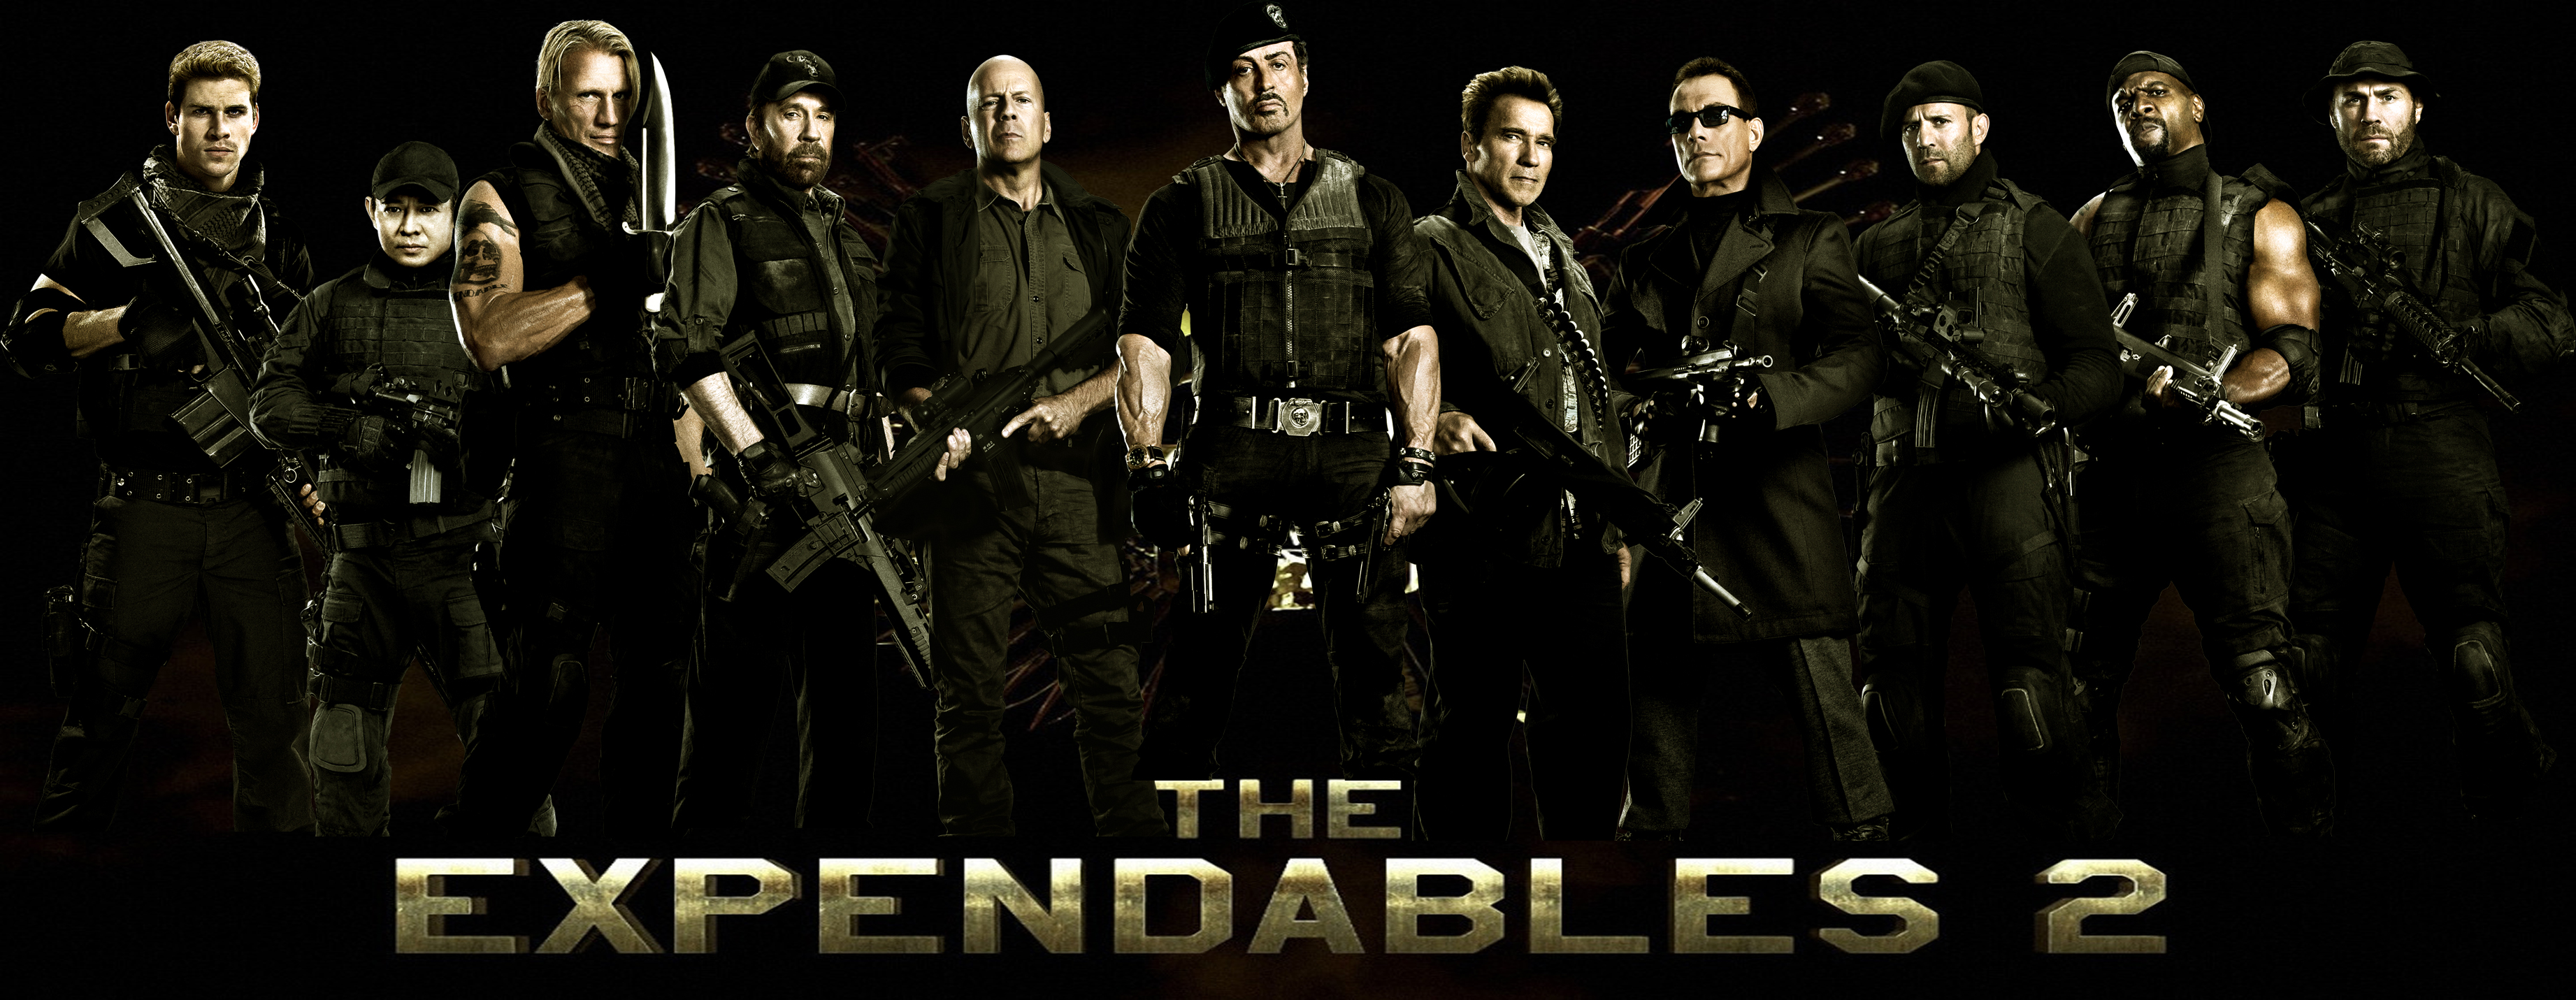 the expendables 2 cast - photo #20